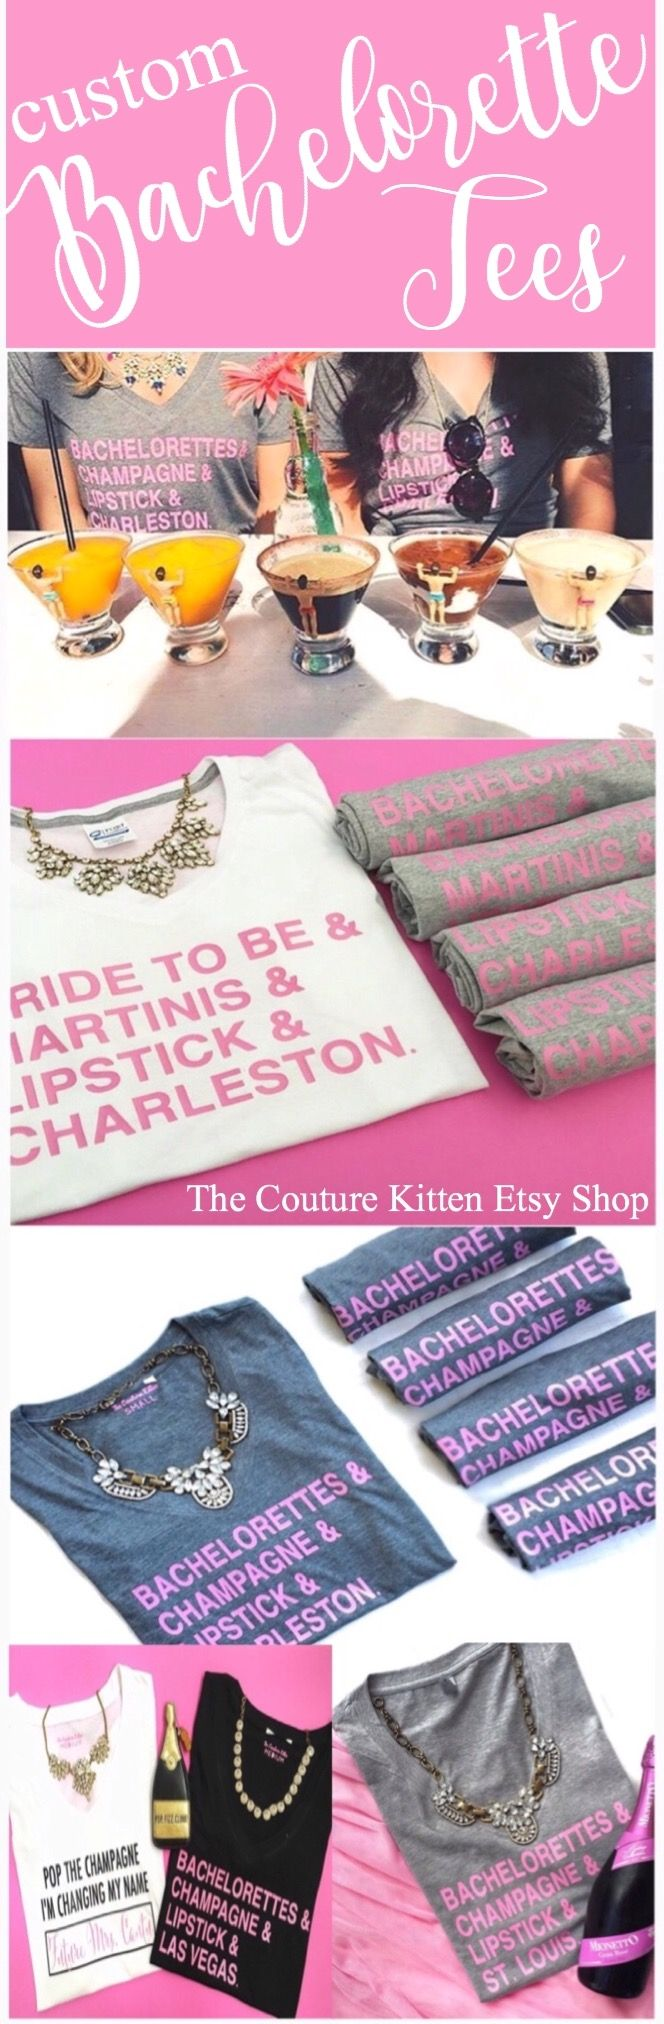 Wherever you go for your BACHELORETTE PARTY, take The Couture Kitten Etsy Shop's CUSTOM BACHELORETTE TEES with you!  Bachelorette Party Bachelorette Weekend Bachelorette Tees Nashville Bachelorette Charleston Bachelorette Las Vegas Bachelorette St. Louis Bachelorette Savannah Bachelorette NYC Bachelorette New Orleans Bachelorette NOLA Bachelorette Bride Tee Bridesmaid Tee Bachelorette Shirt Bride Shirt Bridesmaid Shirt